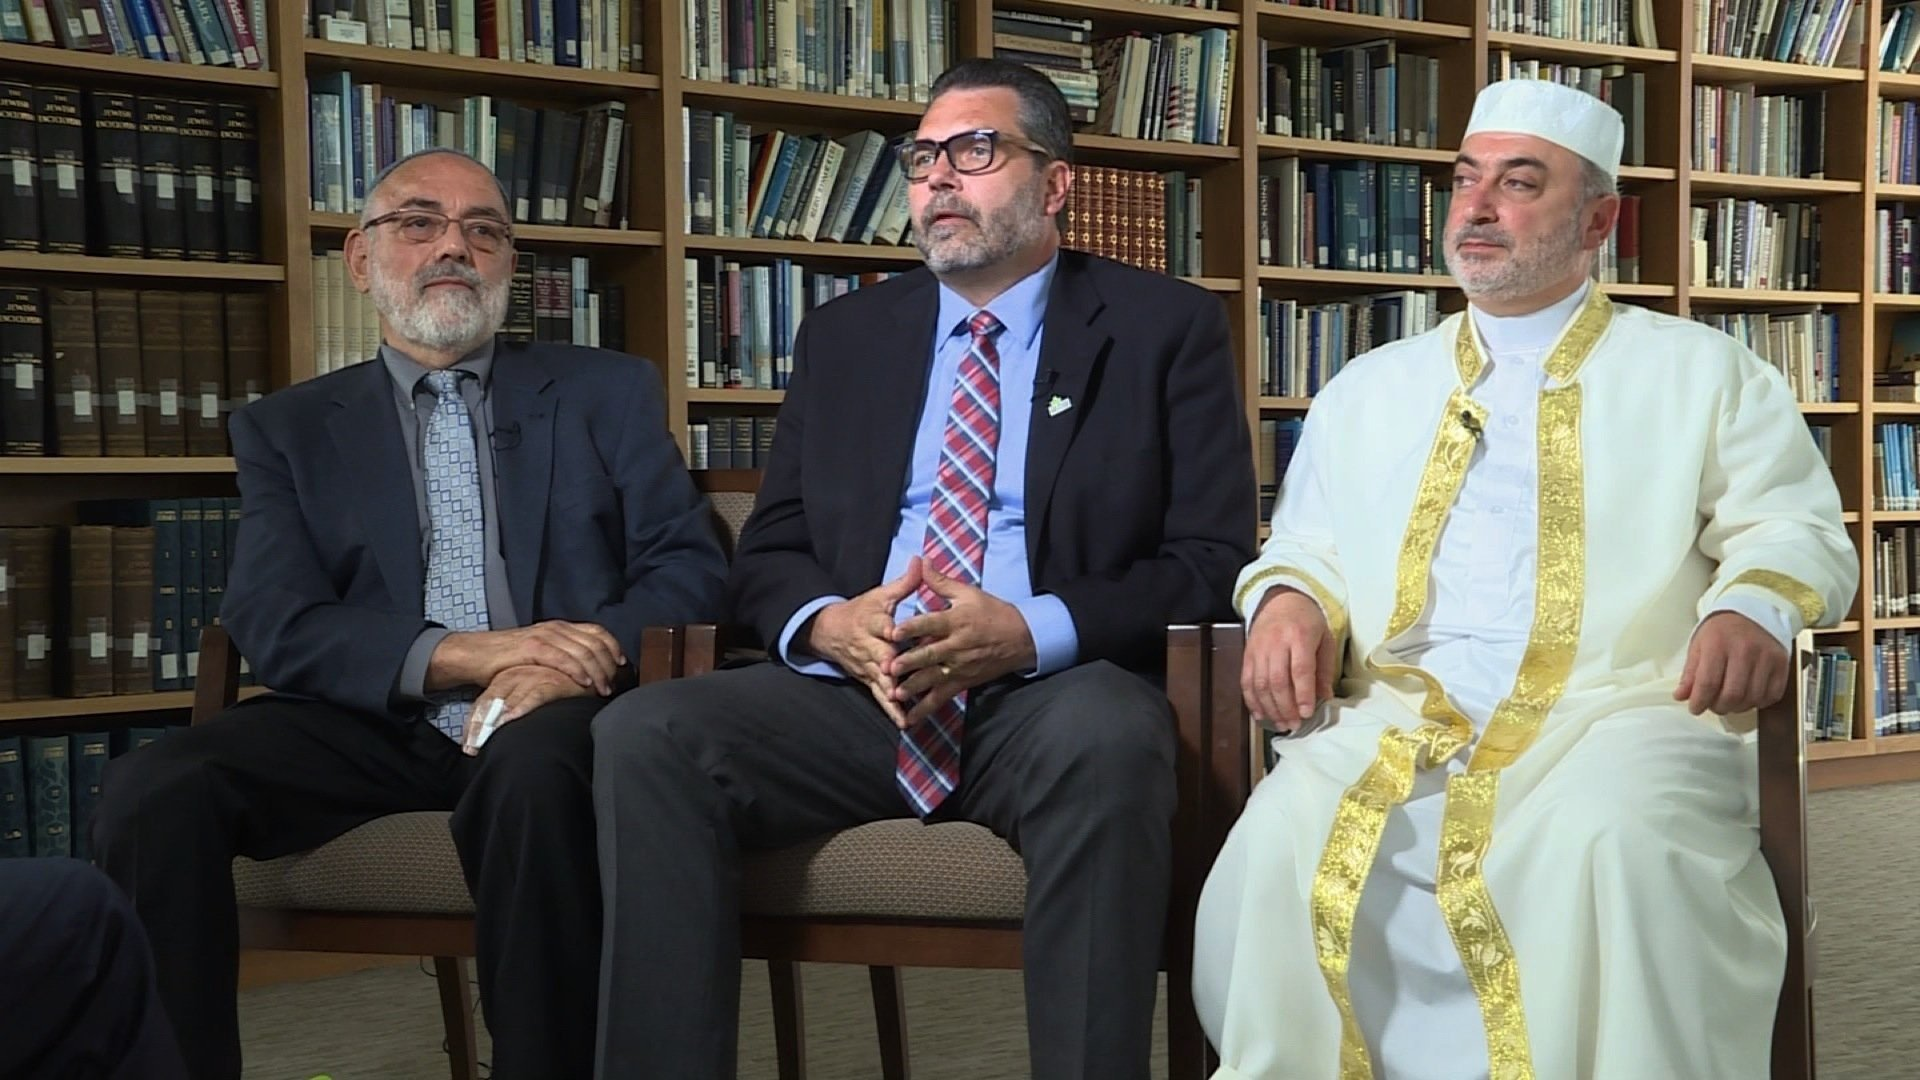 The three clergymen leading congregations participating in the Tri-Faith Initiative are (L-R) Temple Israel Rabbi Emeritus Aryeh Azriel, Countryside Community Church Senior Minister Eric Elnes, and American Muslim Institute Imam Mohamad Jamal Daoudi.